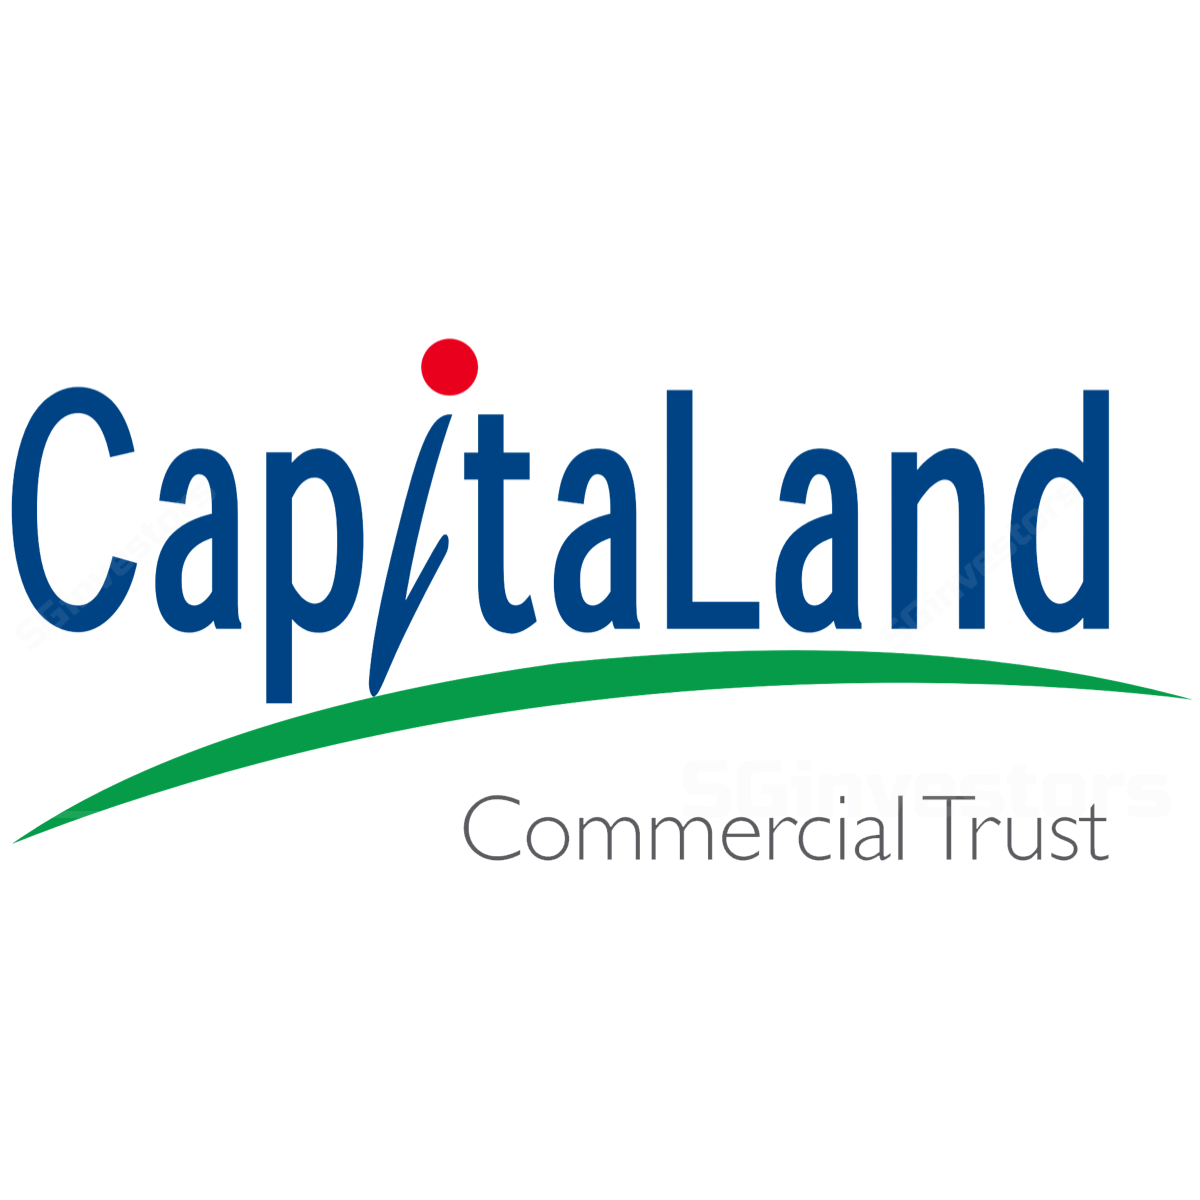 CapitaLand Commercial Trust - DBS Vickers 2018-06-29: Confounding The Critics Again